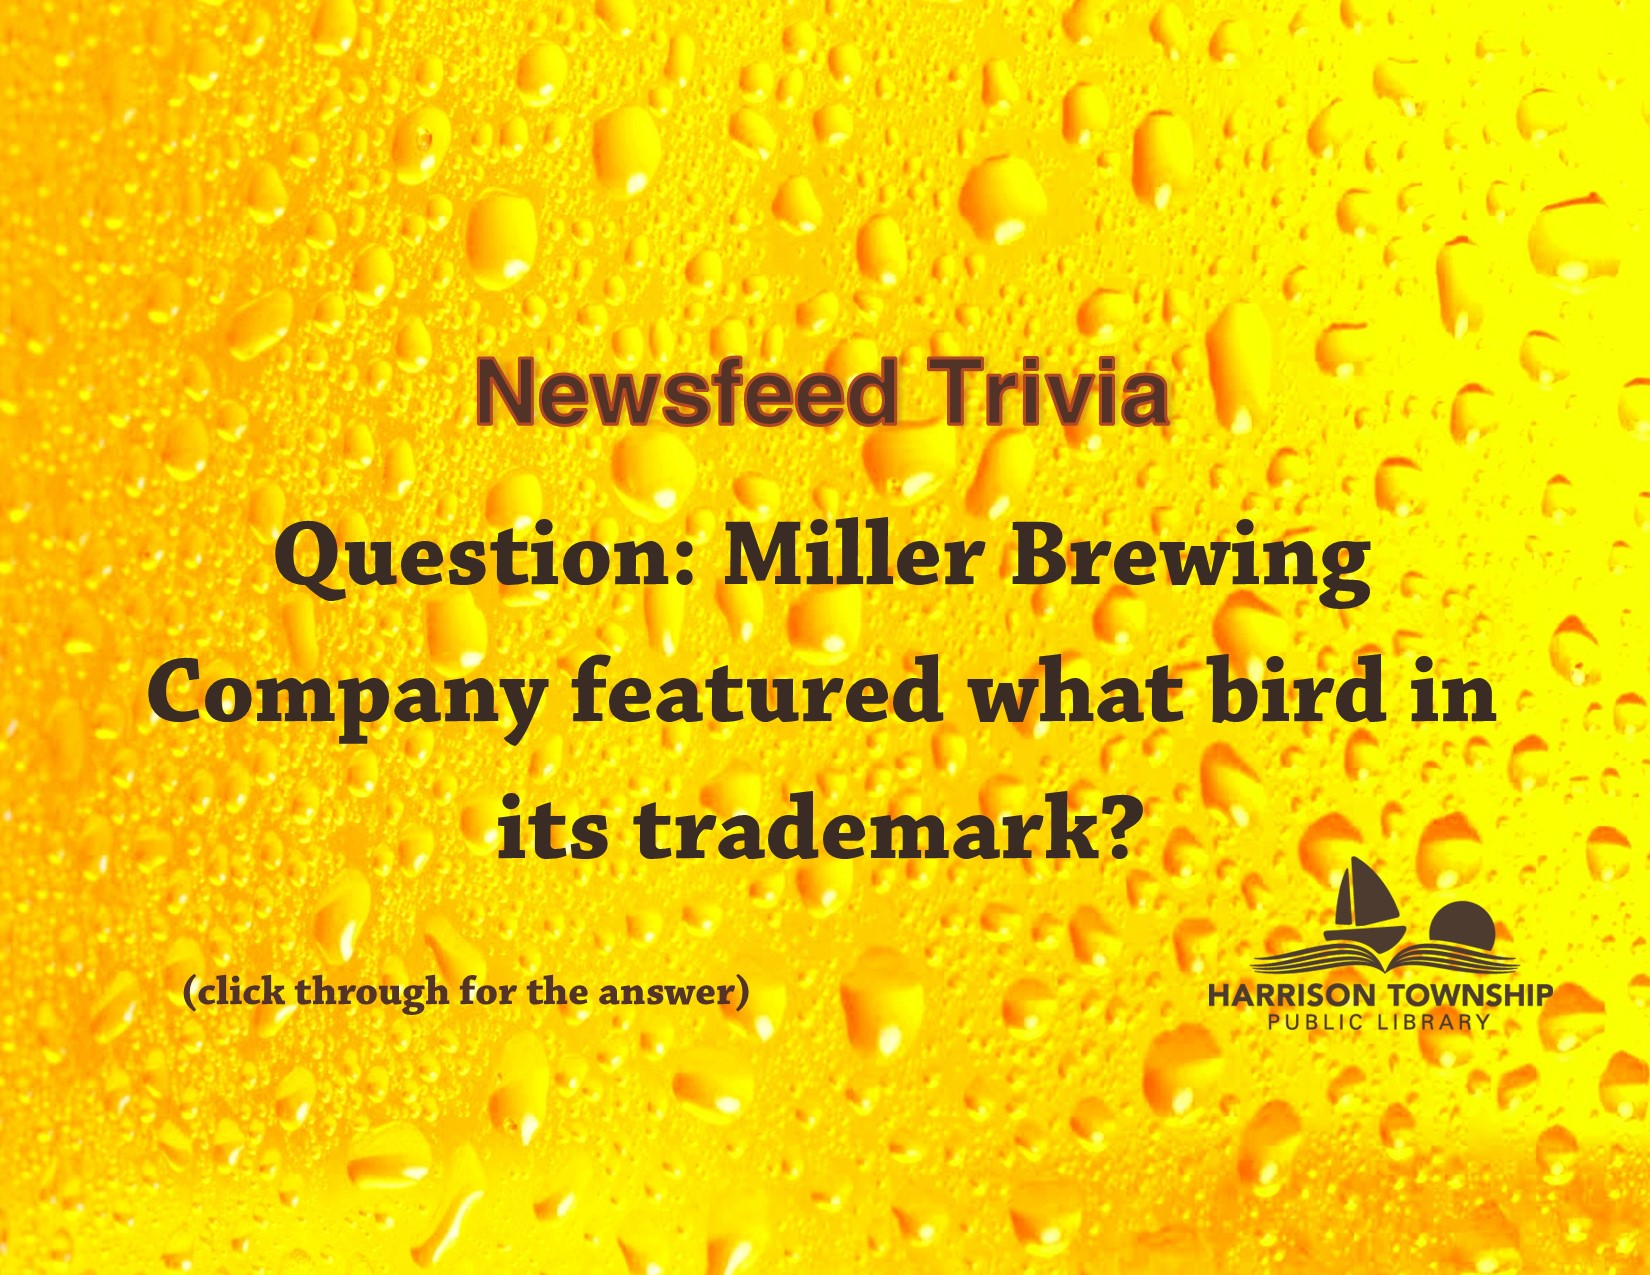 Miller Brewing Company featured what bird in its trademark?